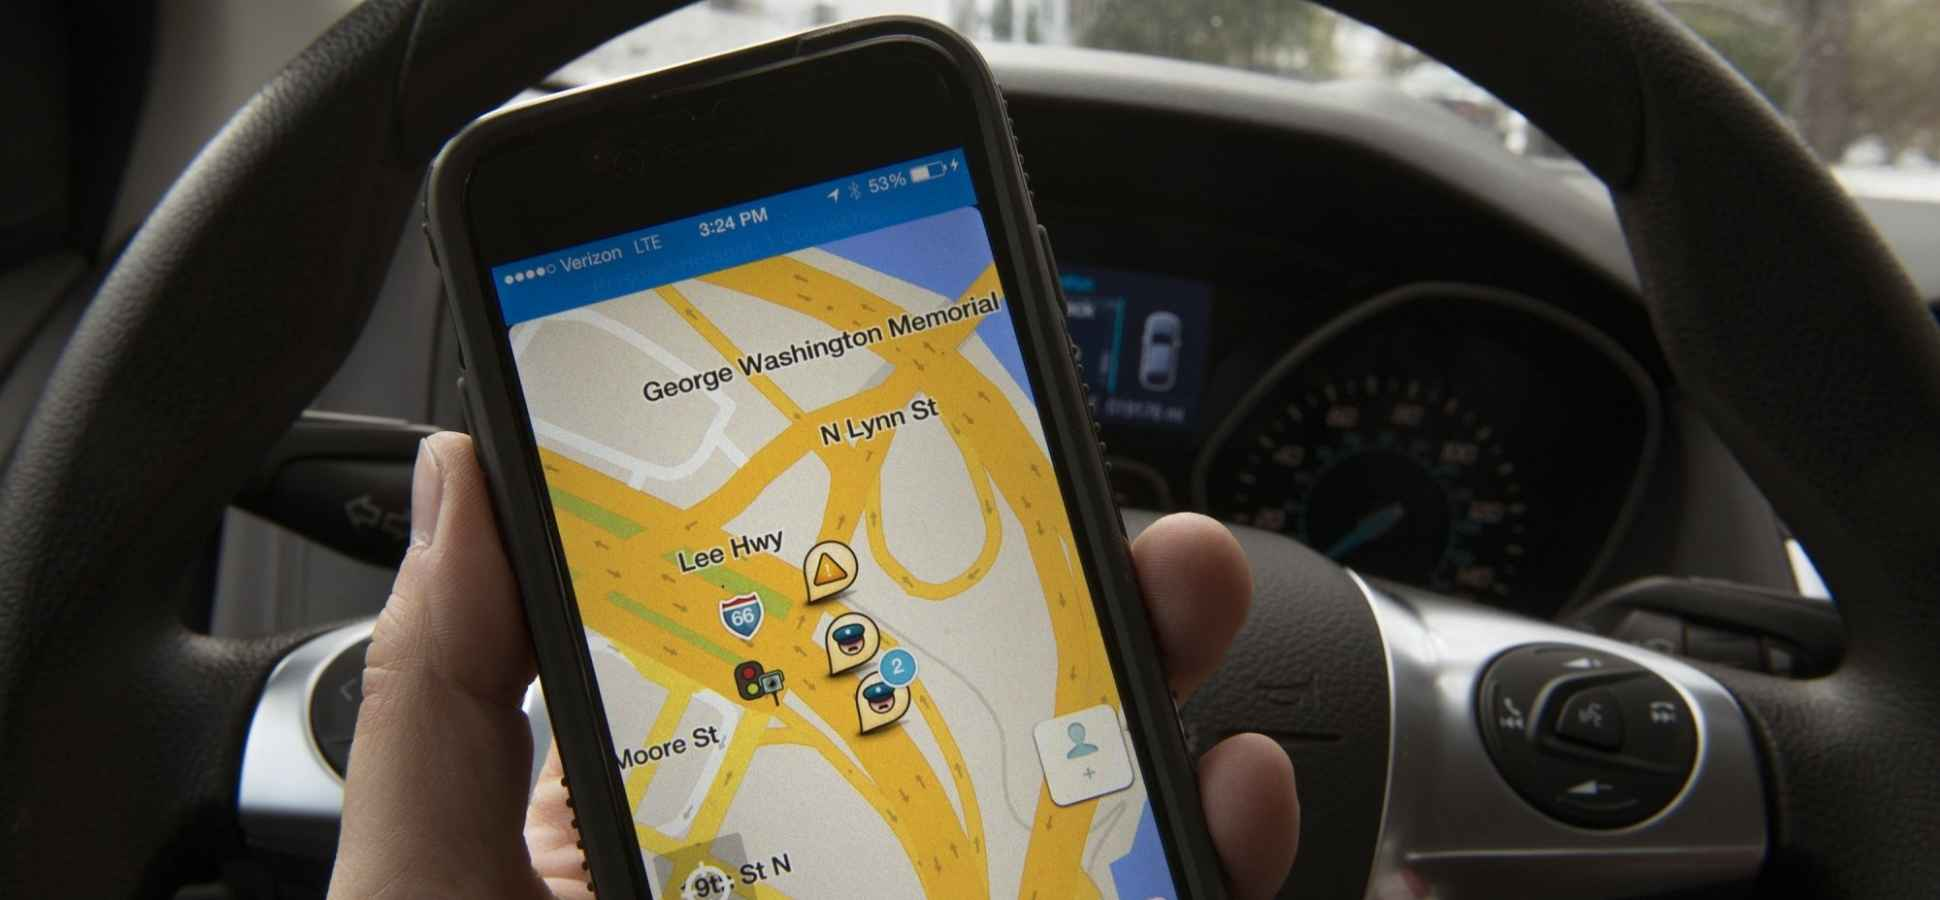 Google's Waze Launches New Technology to Give You GPS Signal in Tunnels